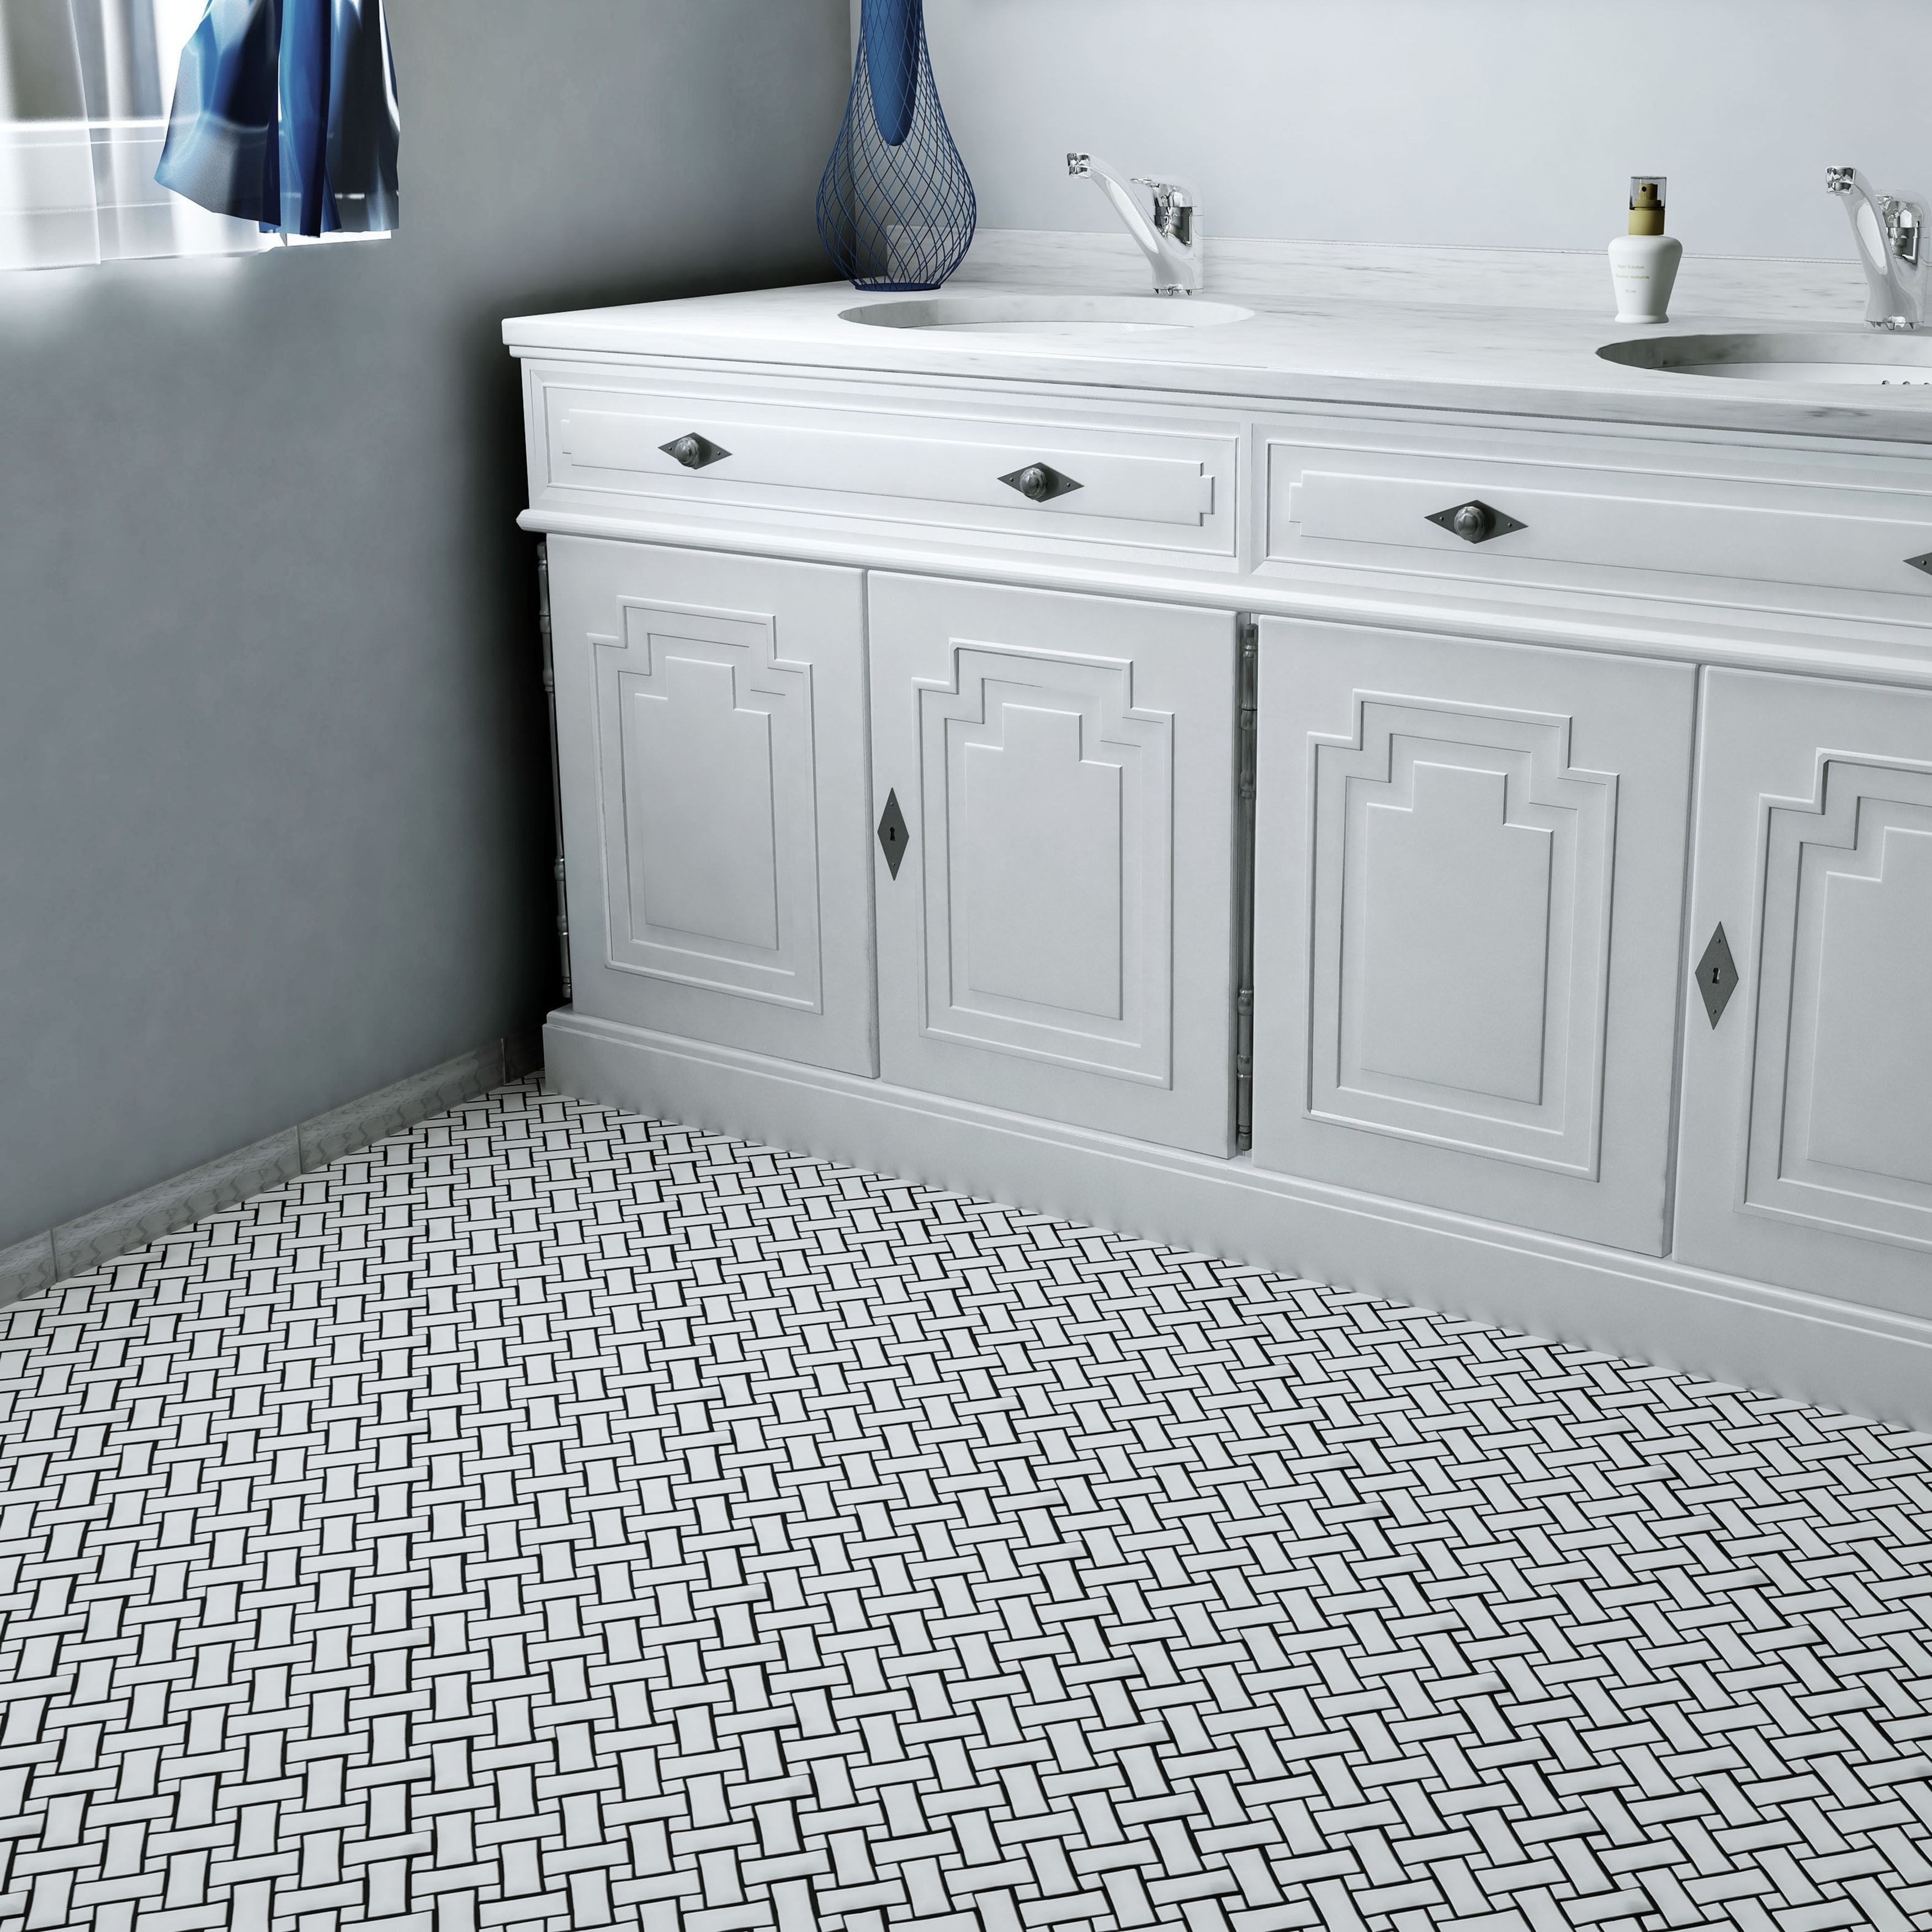 Floor Tiles Add The Clic Beauty And Functionality Of To Your Home Free Shipping On Orders Over 45